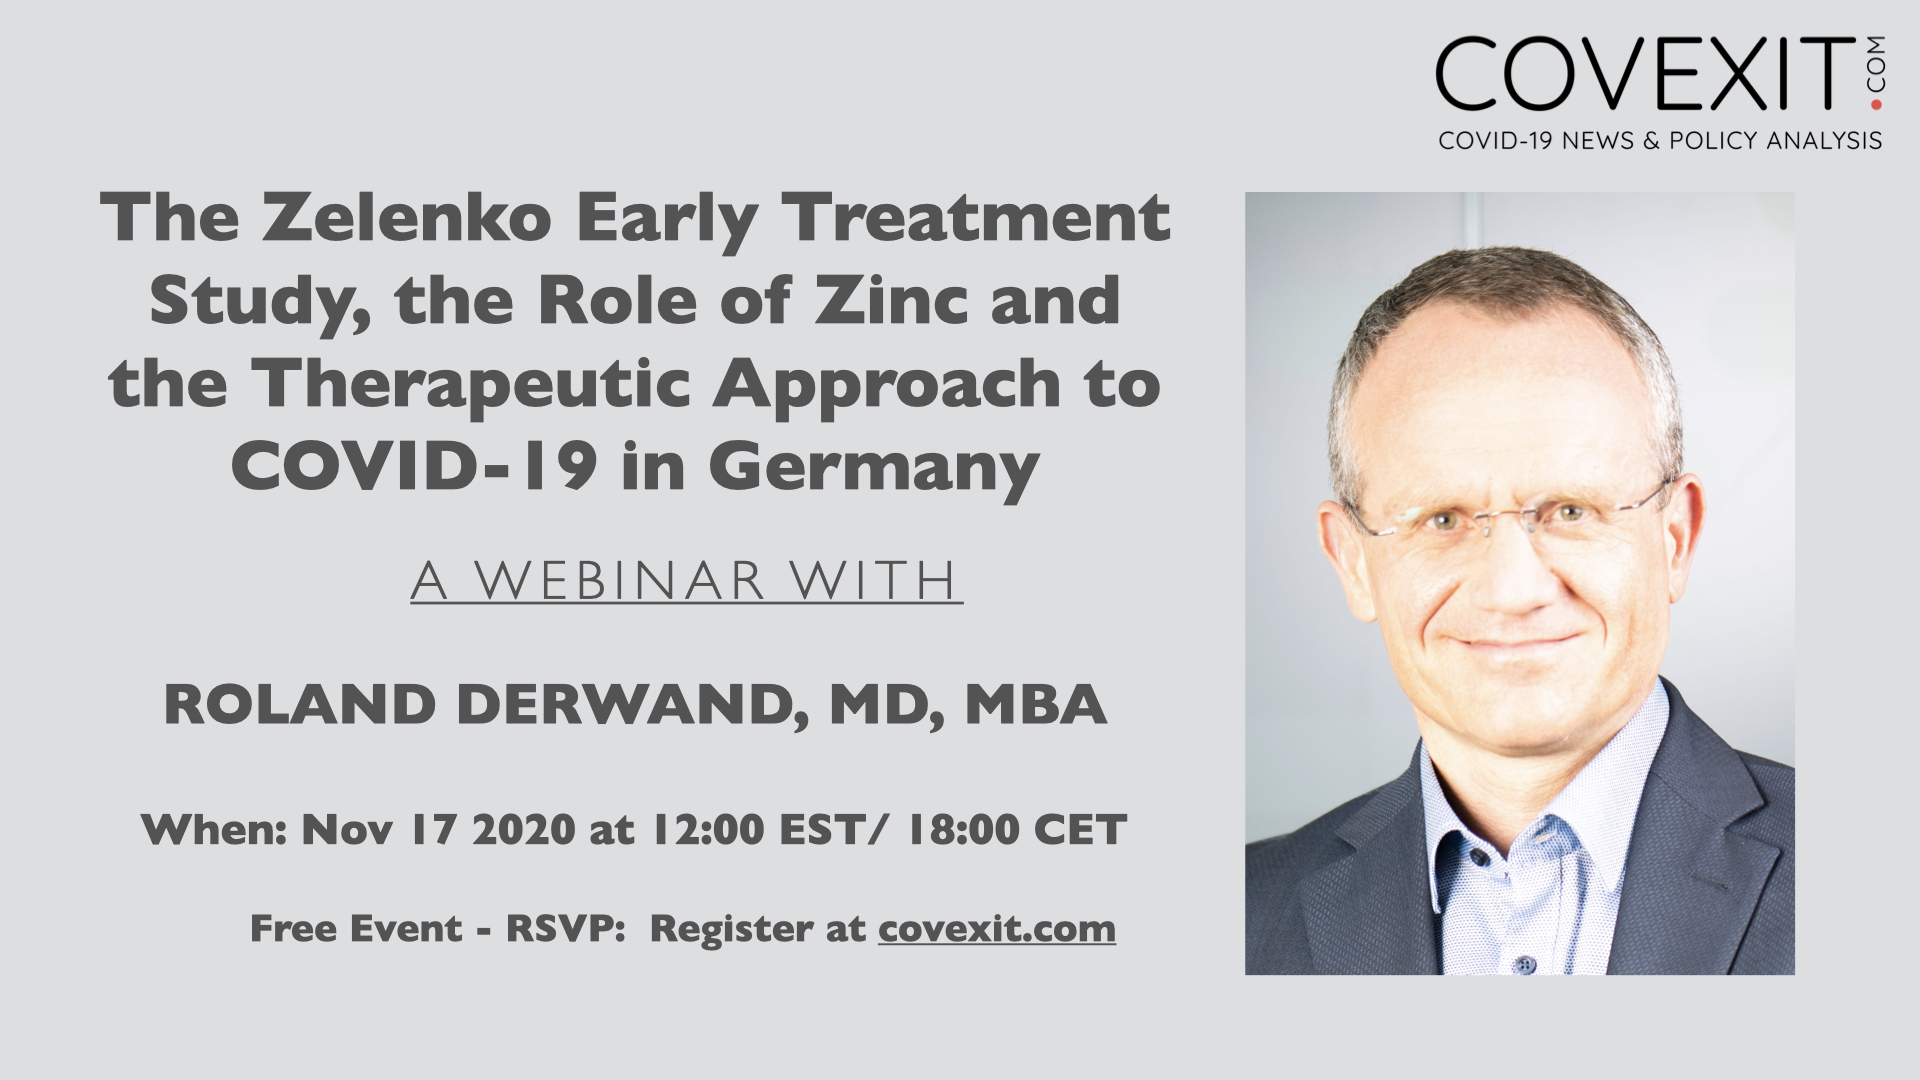 The Zelenko Early Treatment Study, the Role of Zinc and the Therapeutic Approach to COVID-19 in Germany -- a Webinar with Roland Derwand, MD, MBA